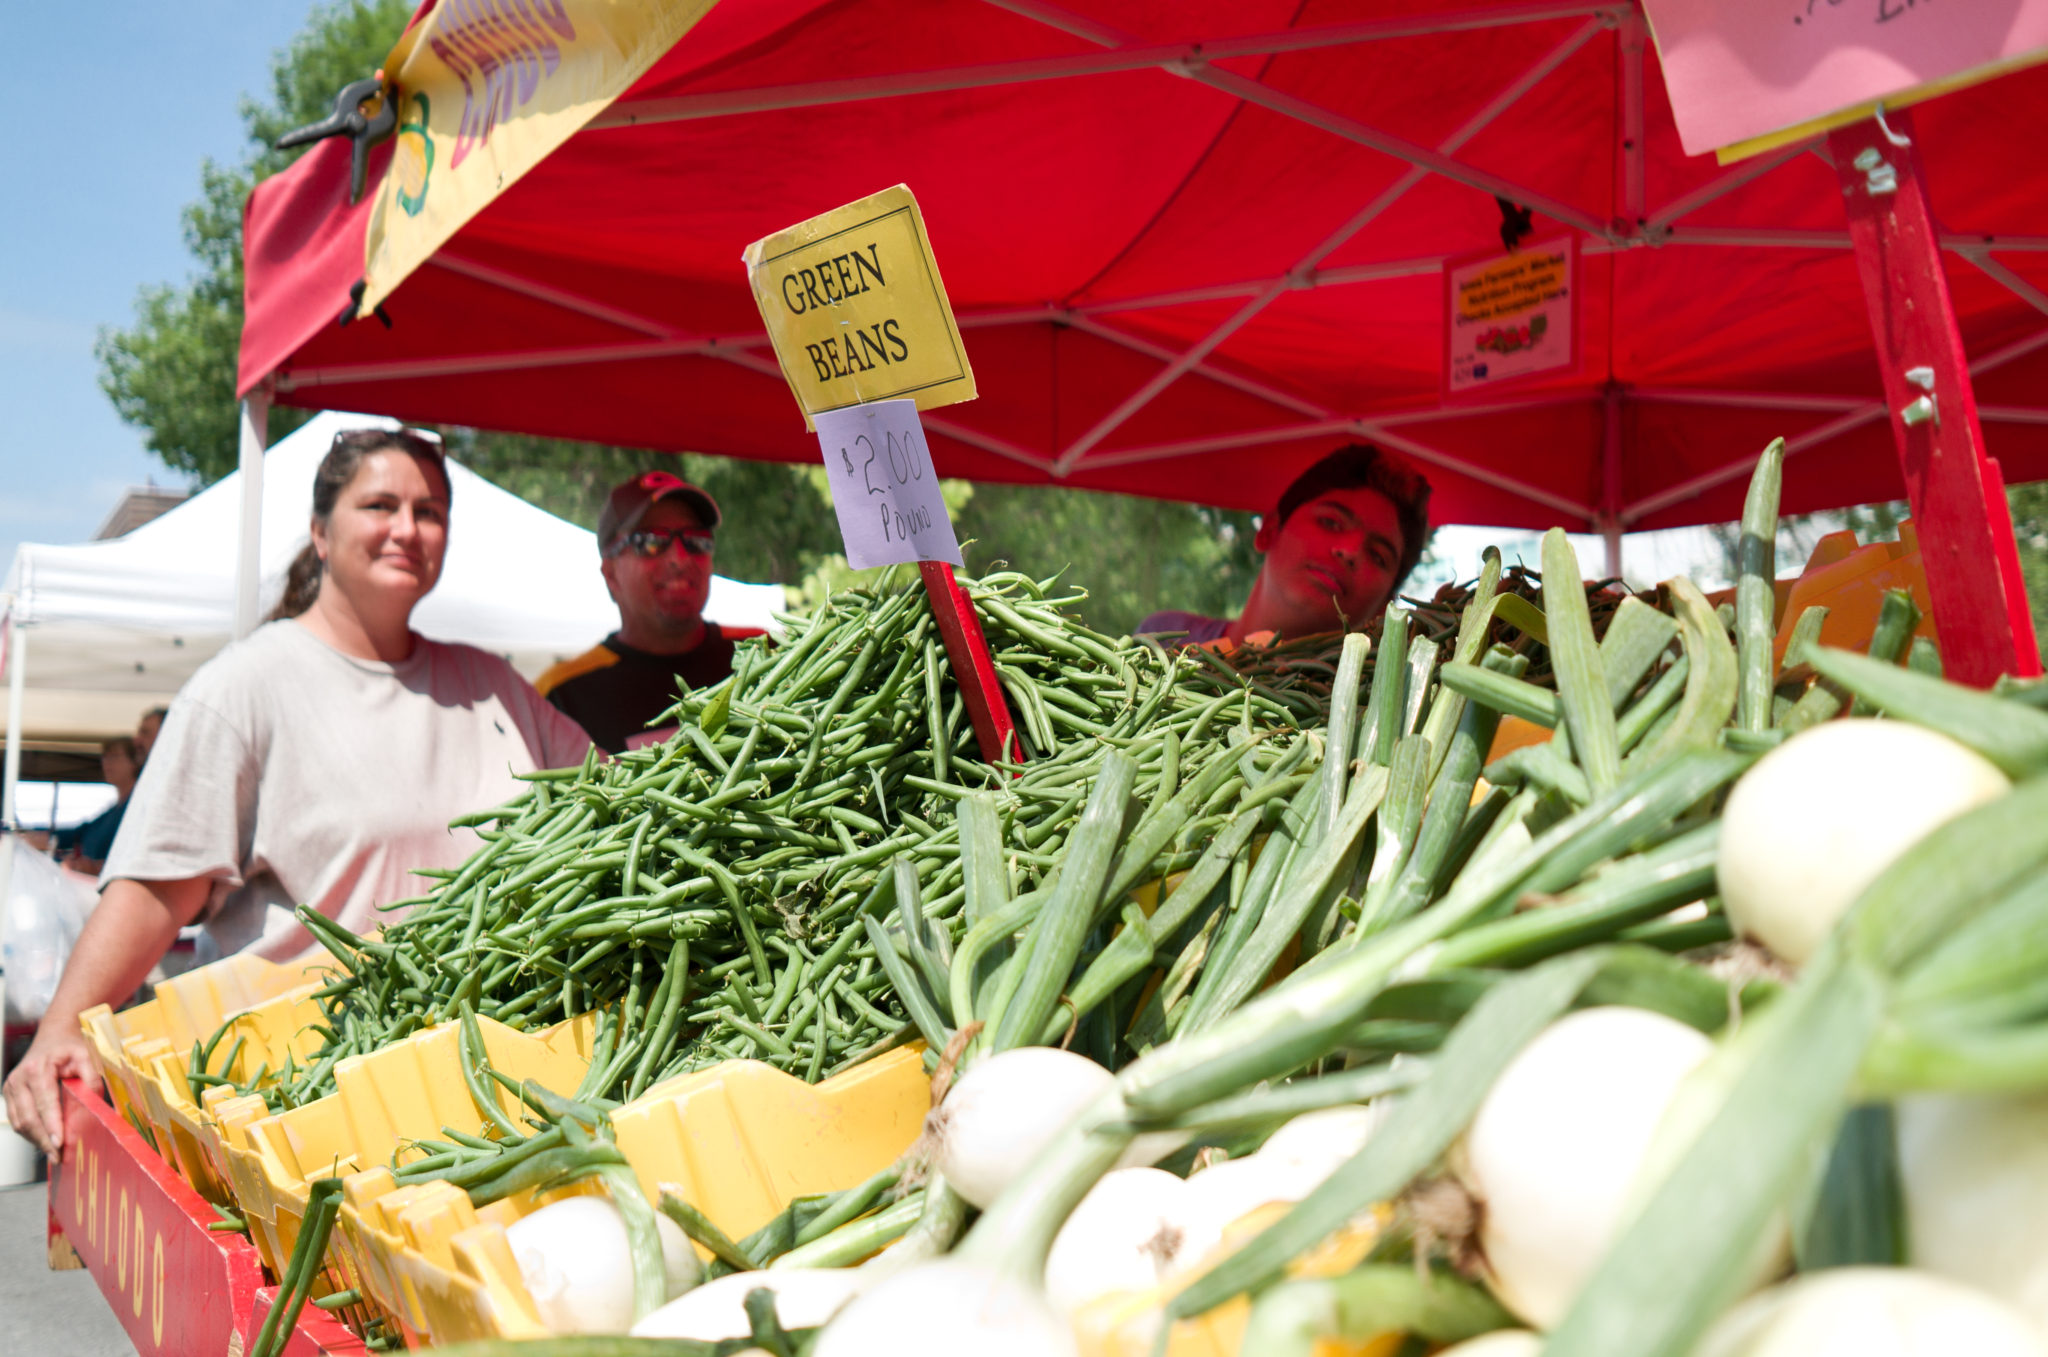 """Farmers' Market"" by Phil Roeder is licensed under CC BY 2.0"